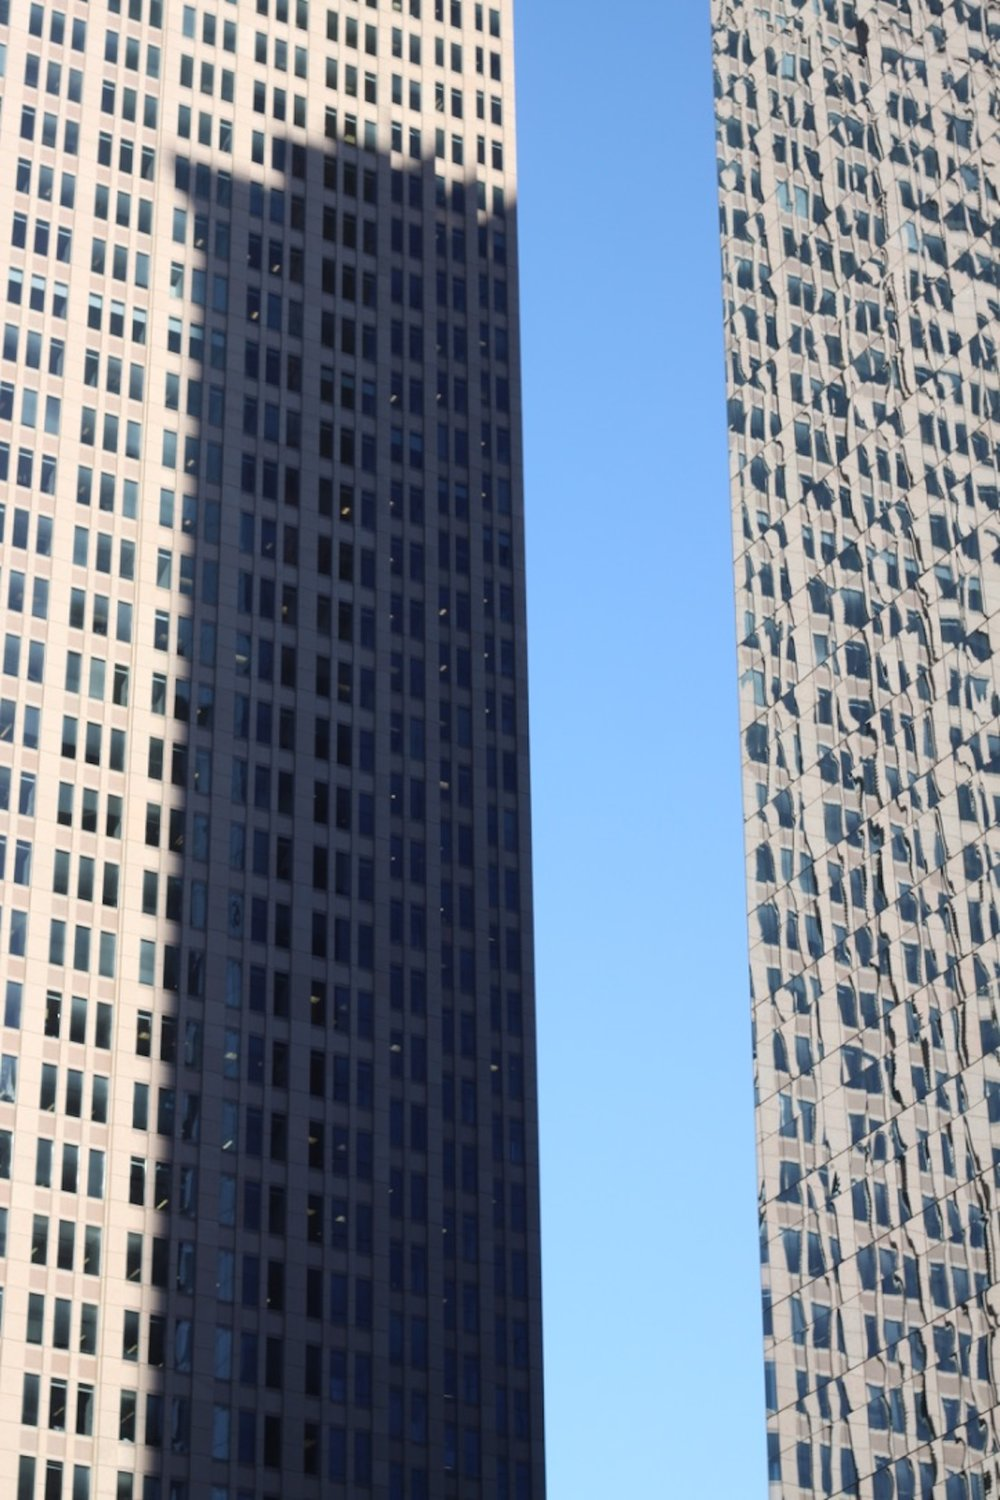 Tall Glass Building Reflection.jpg